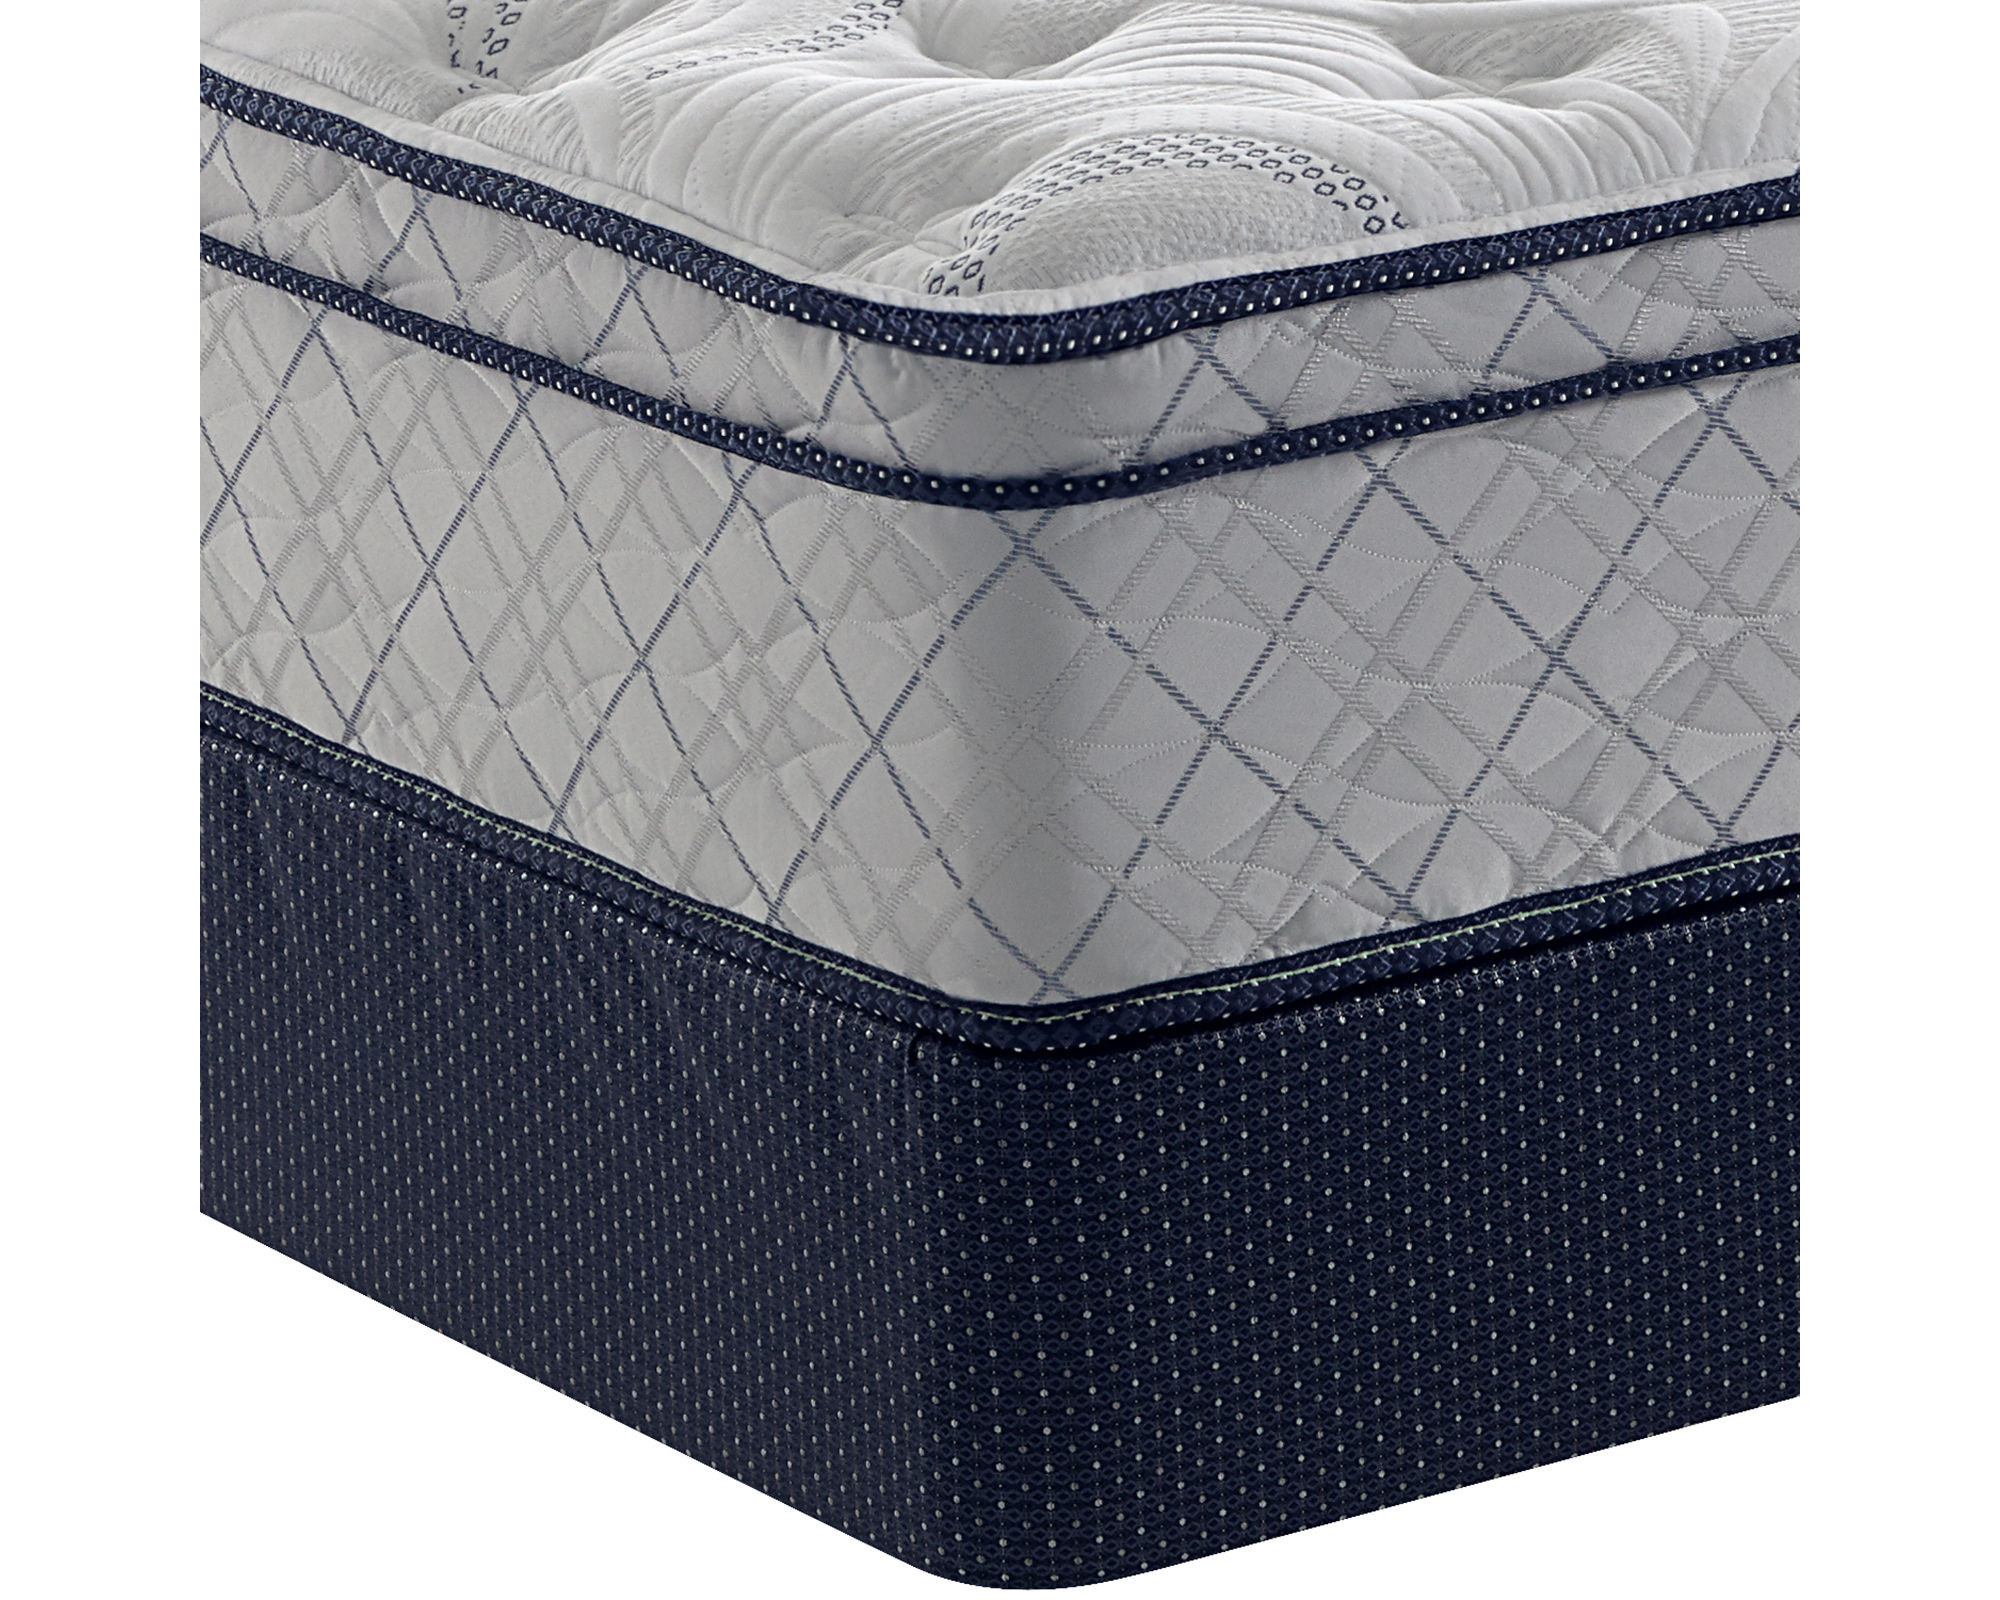 Serta mattress 310 perfect sleeper inverrary euro